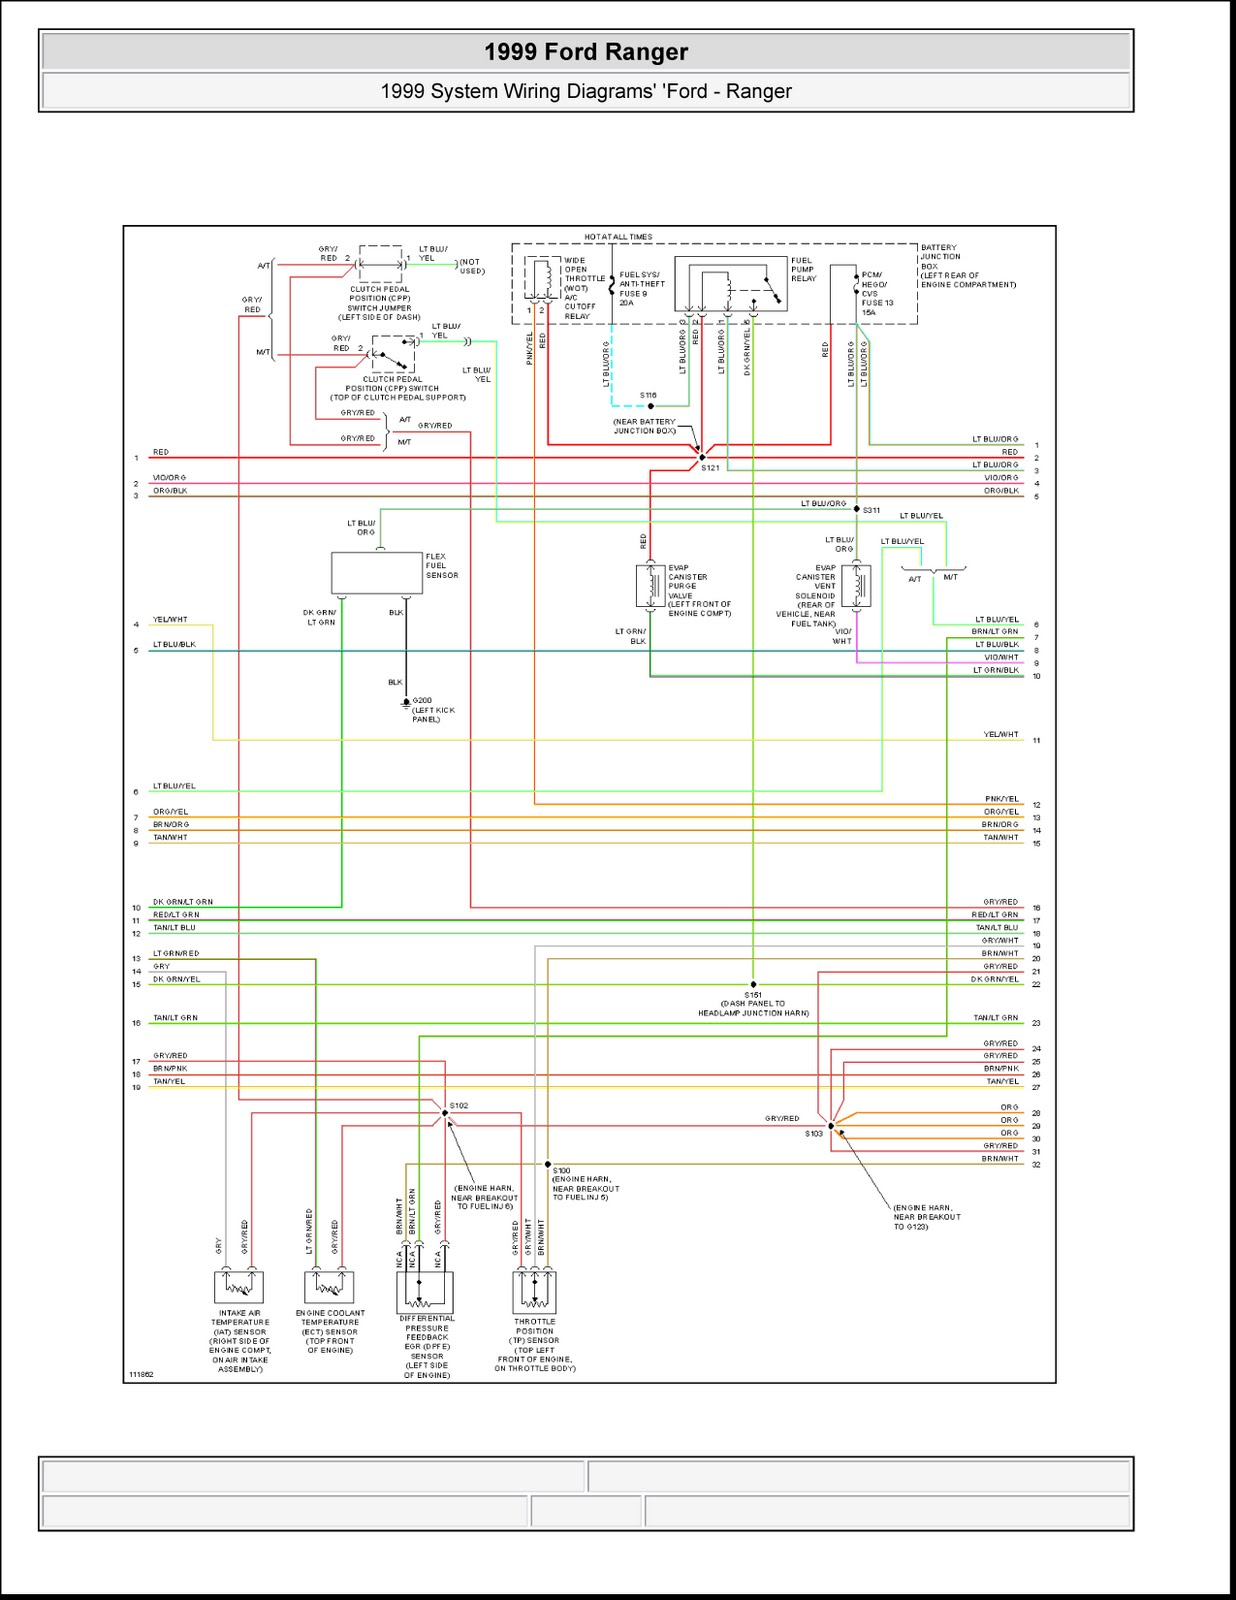 2011 Ford Ranger Dashboard Wiring Diagram Pleted Diagrams. 1999 Ford Ranger System Wiring Diagrams 4 S Rh Wiringdiagramsolution Blogspot 2007 Diagram. Wiring. 1993 F250 Dash Wiring Diagram At Scoala.co